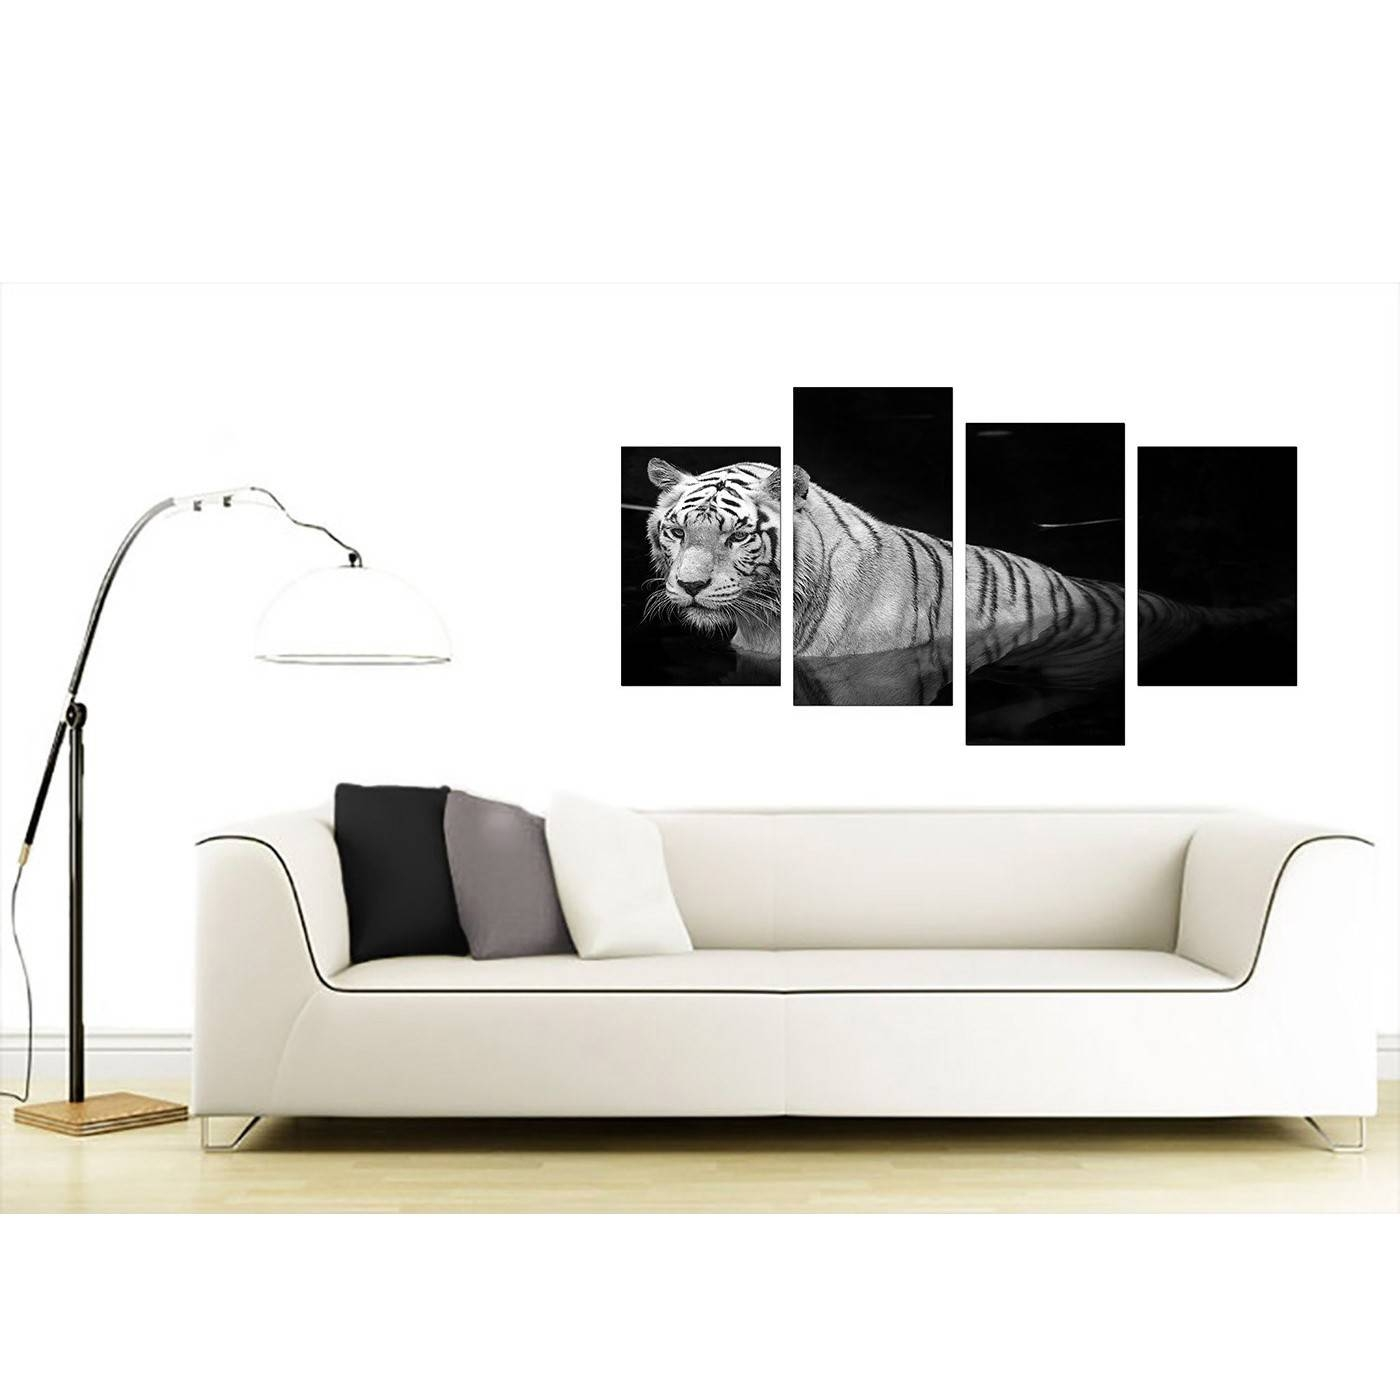 Black And White – Tiger Canvas Wall Art – For Bedroom Throughout Most Recent Black And White Wall Art (View 13 of 16)